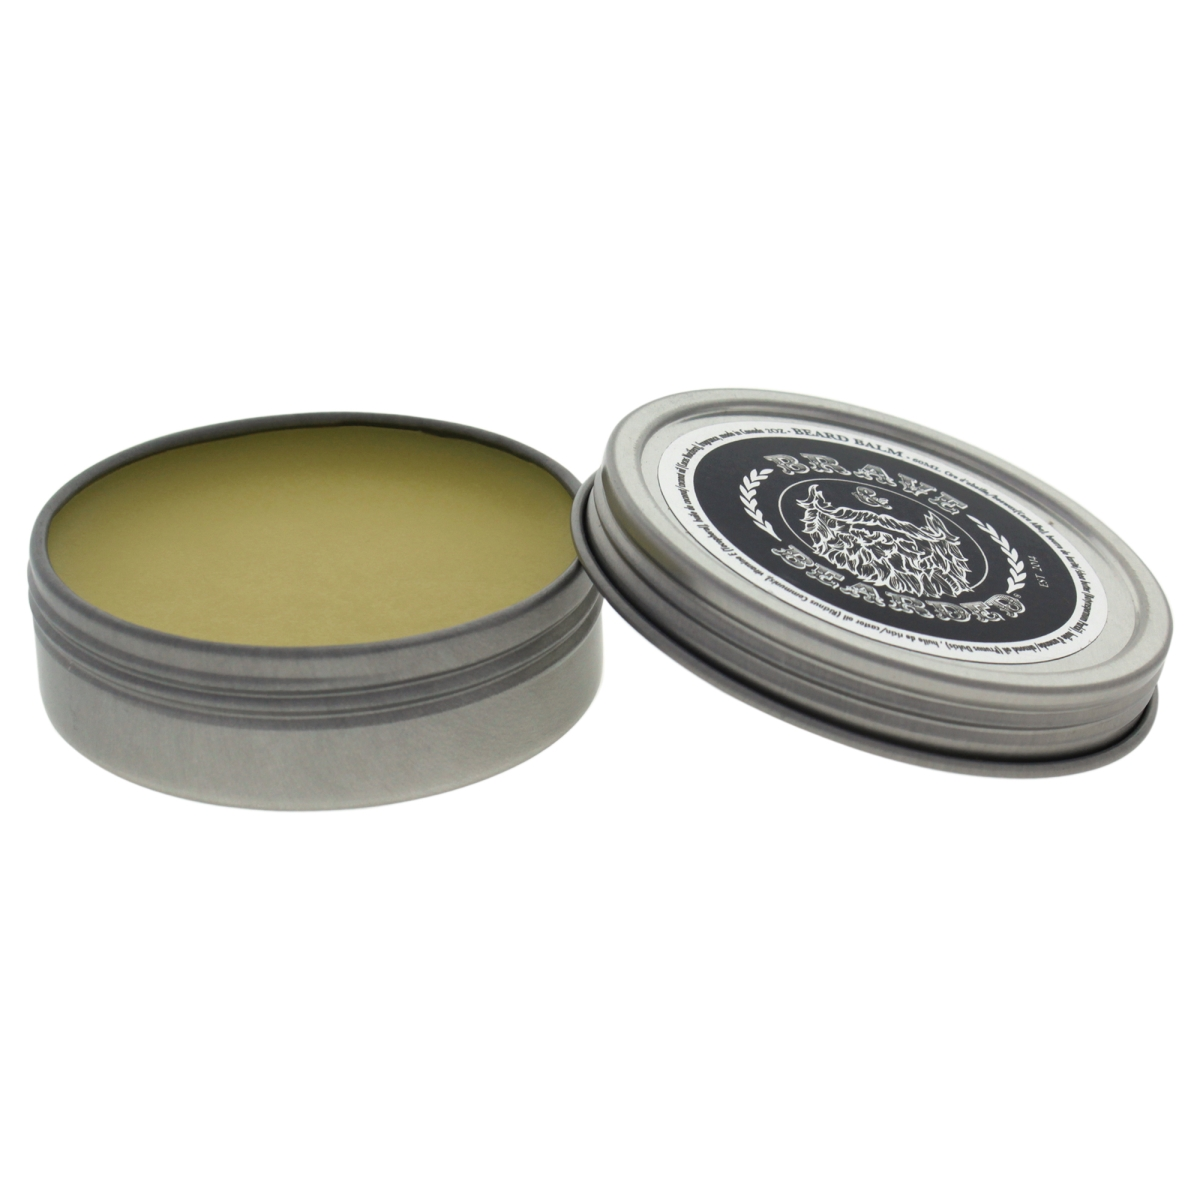 Brave & Bearded M-HC-1362 Beard Balm - Brave Soul for Men - 2 oz